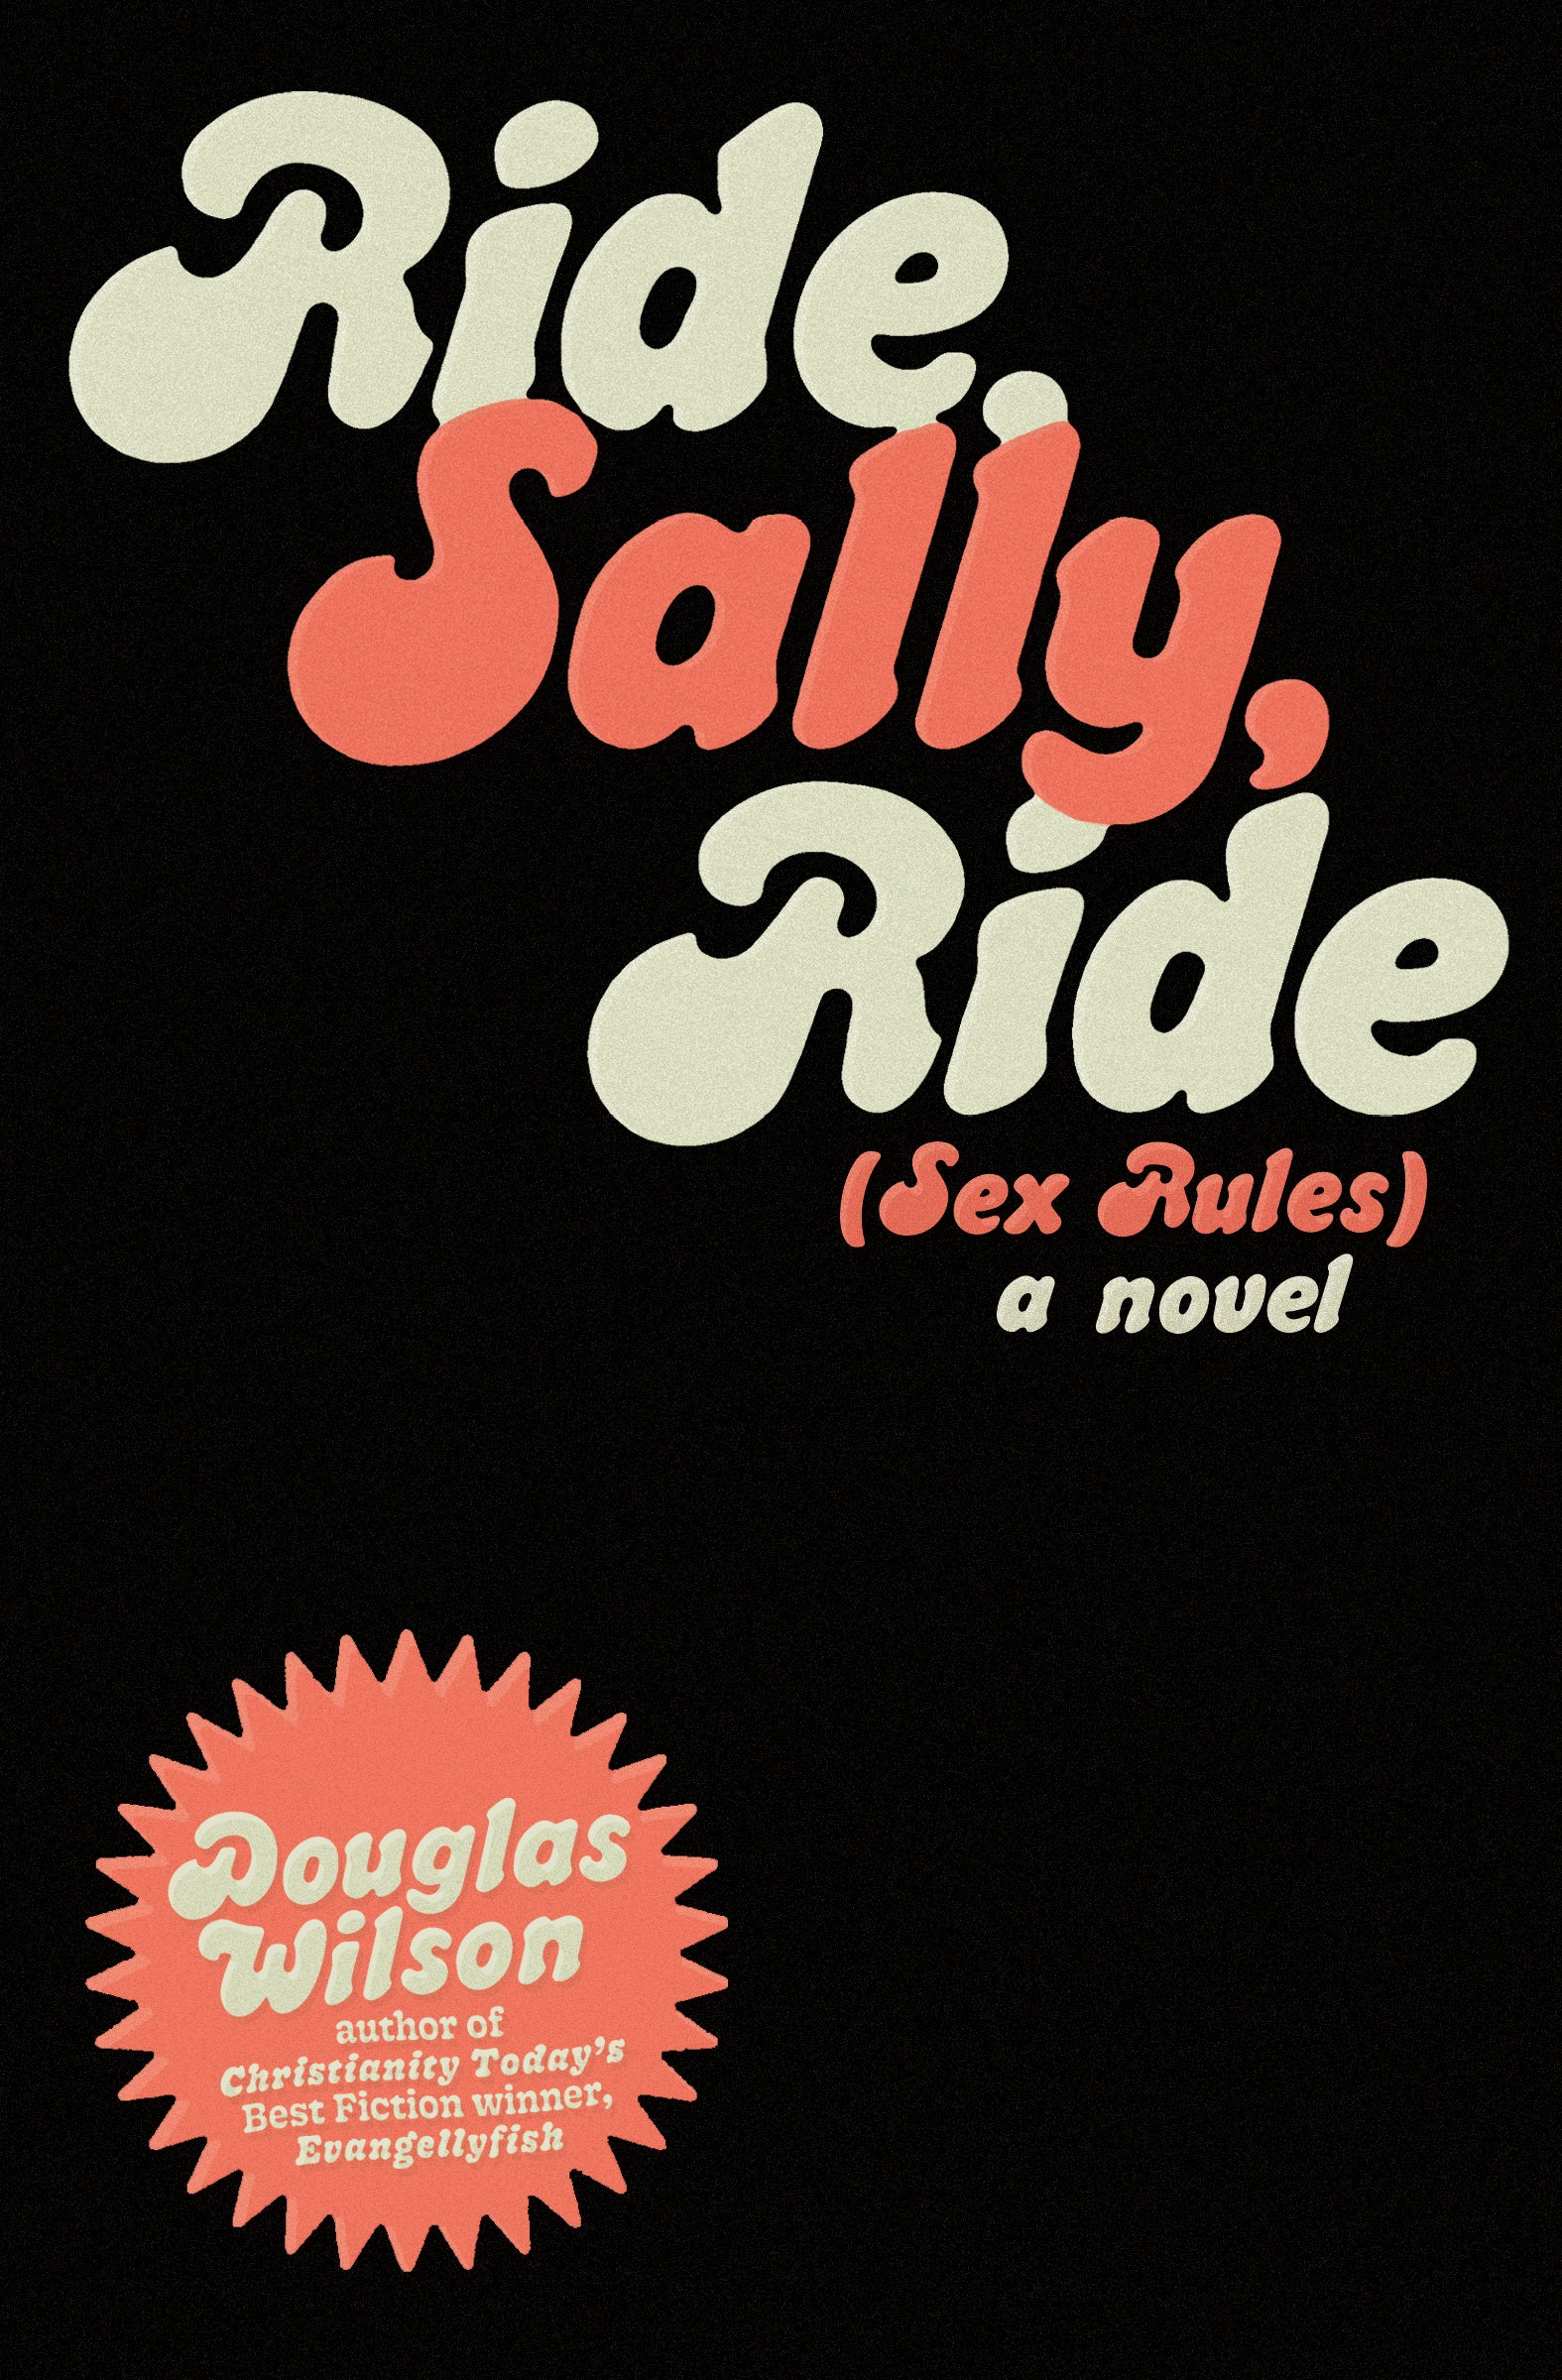 Ride, Sally, Ride (Sex Rules): A Novel, by Douglas Wilson, author of Christianity Today's Best Fiction Winner, Evangellyfish